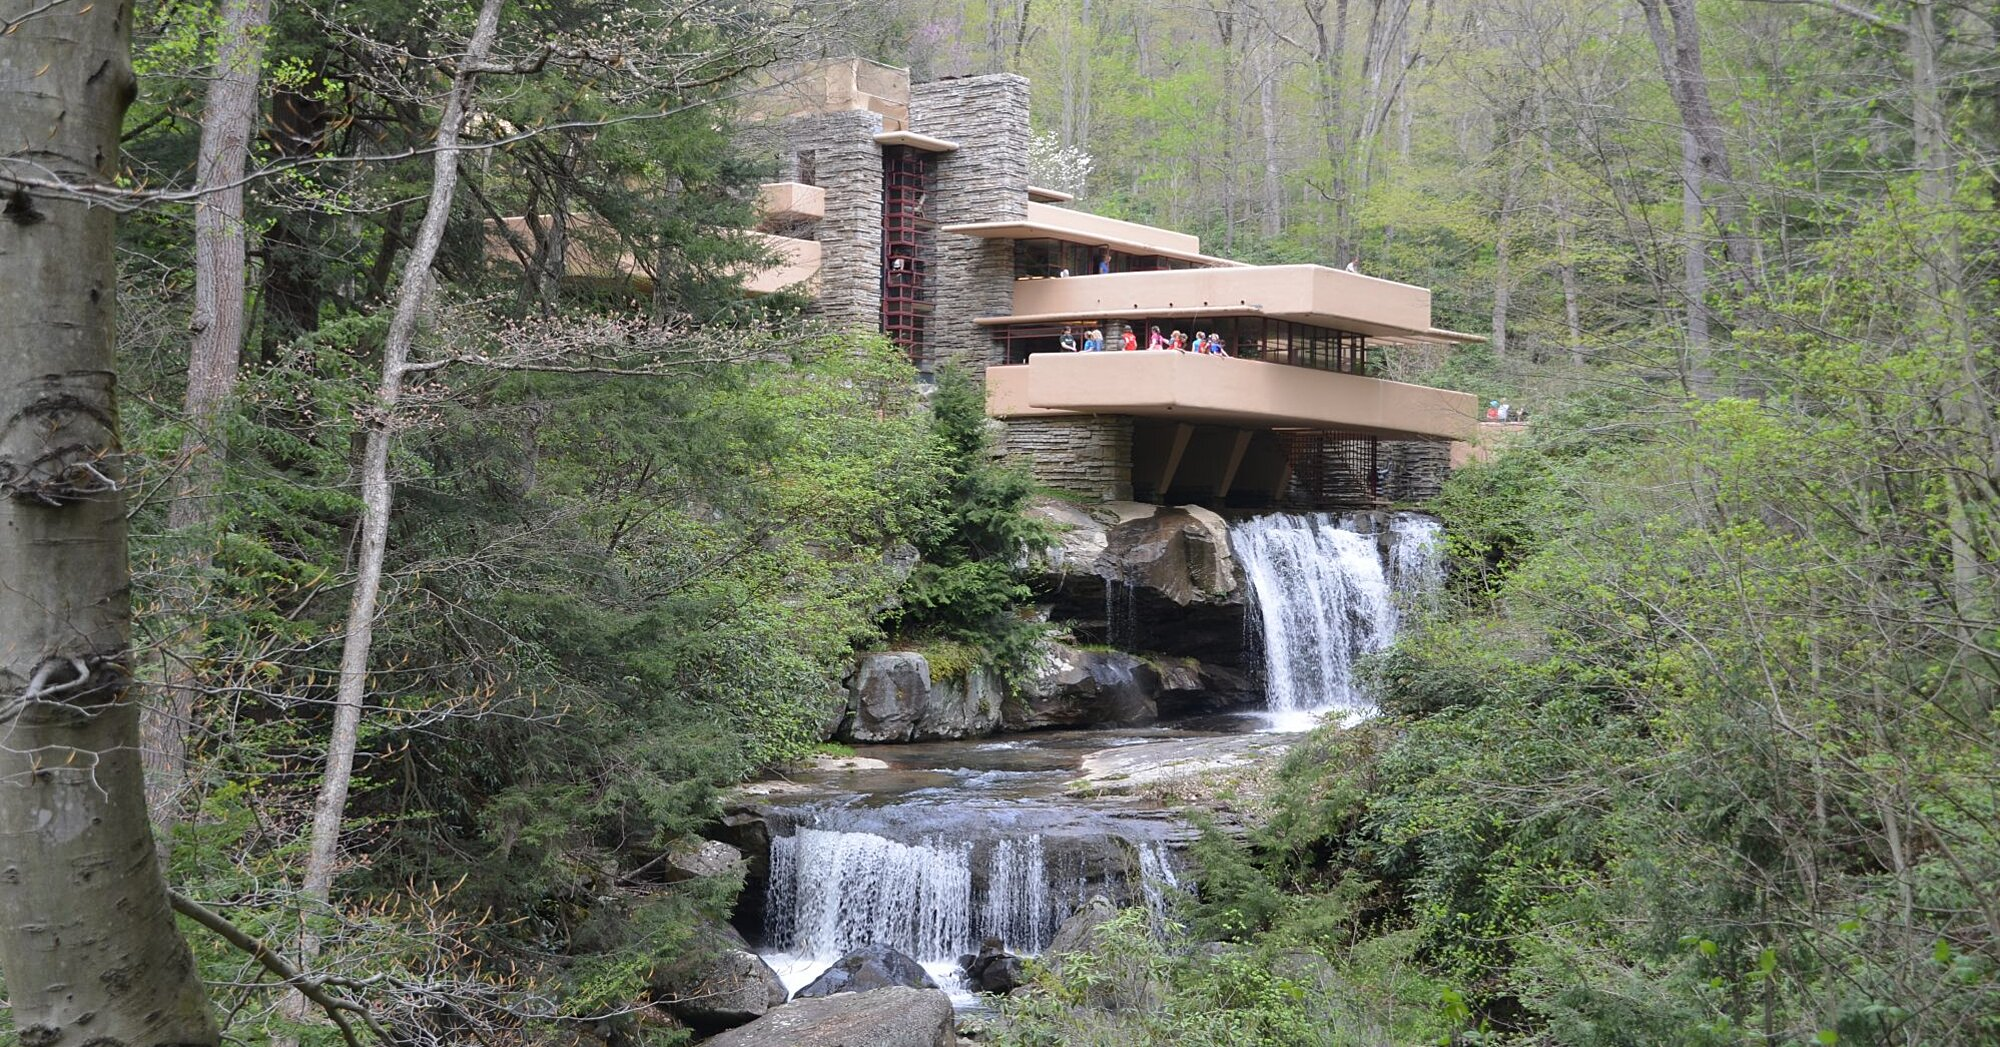 You Can Now Take Virtual Tours of 12 Incredible Frank Lloyd Wright Buildings